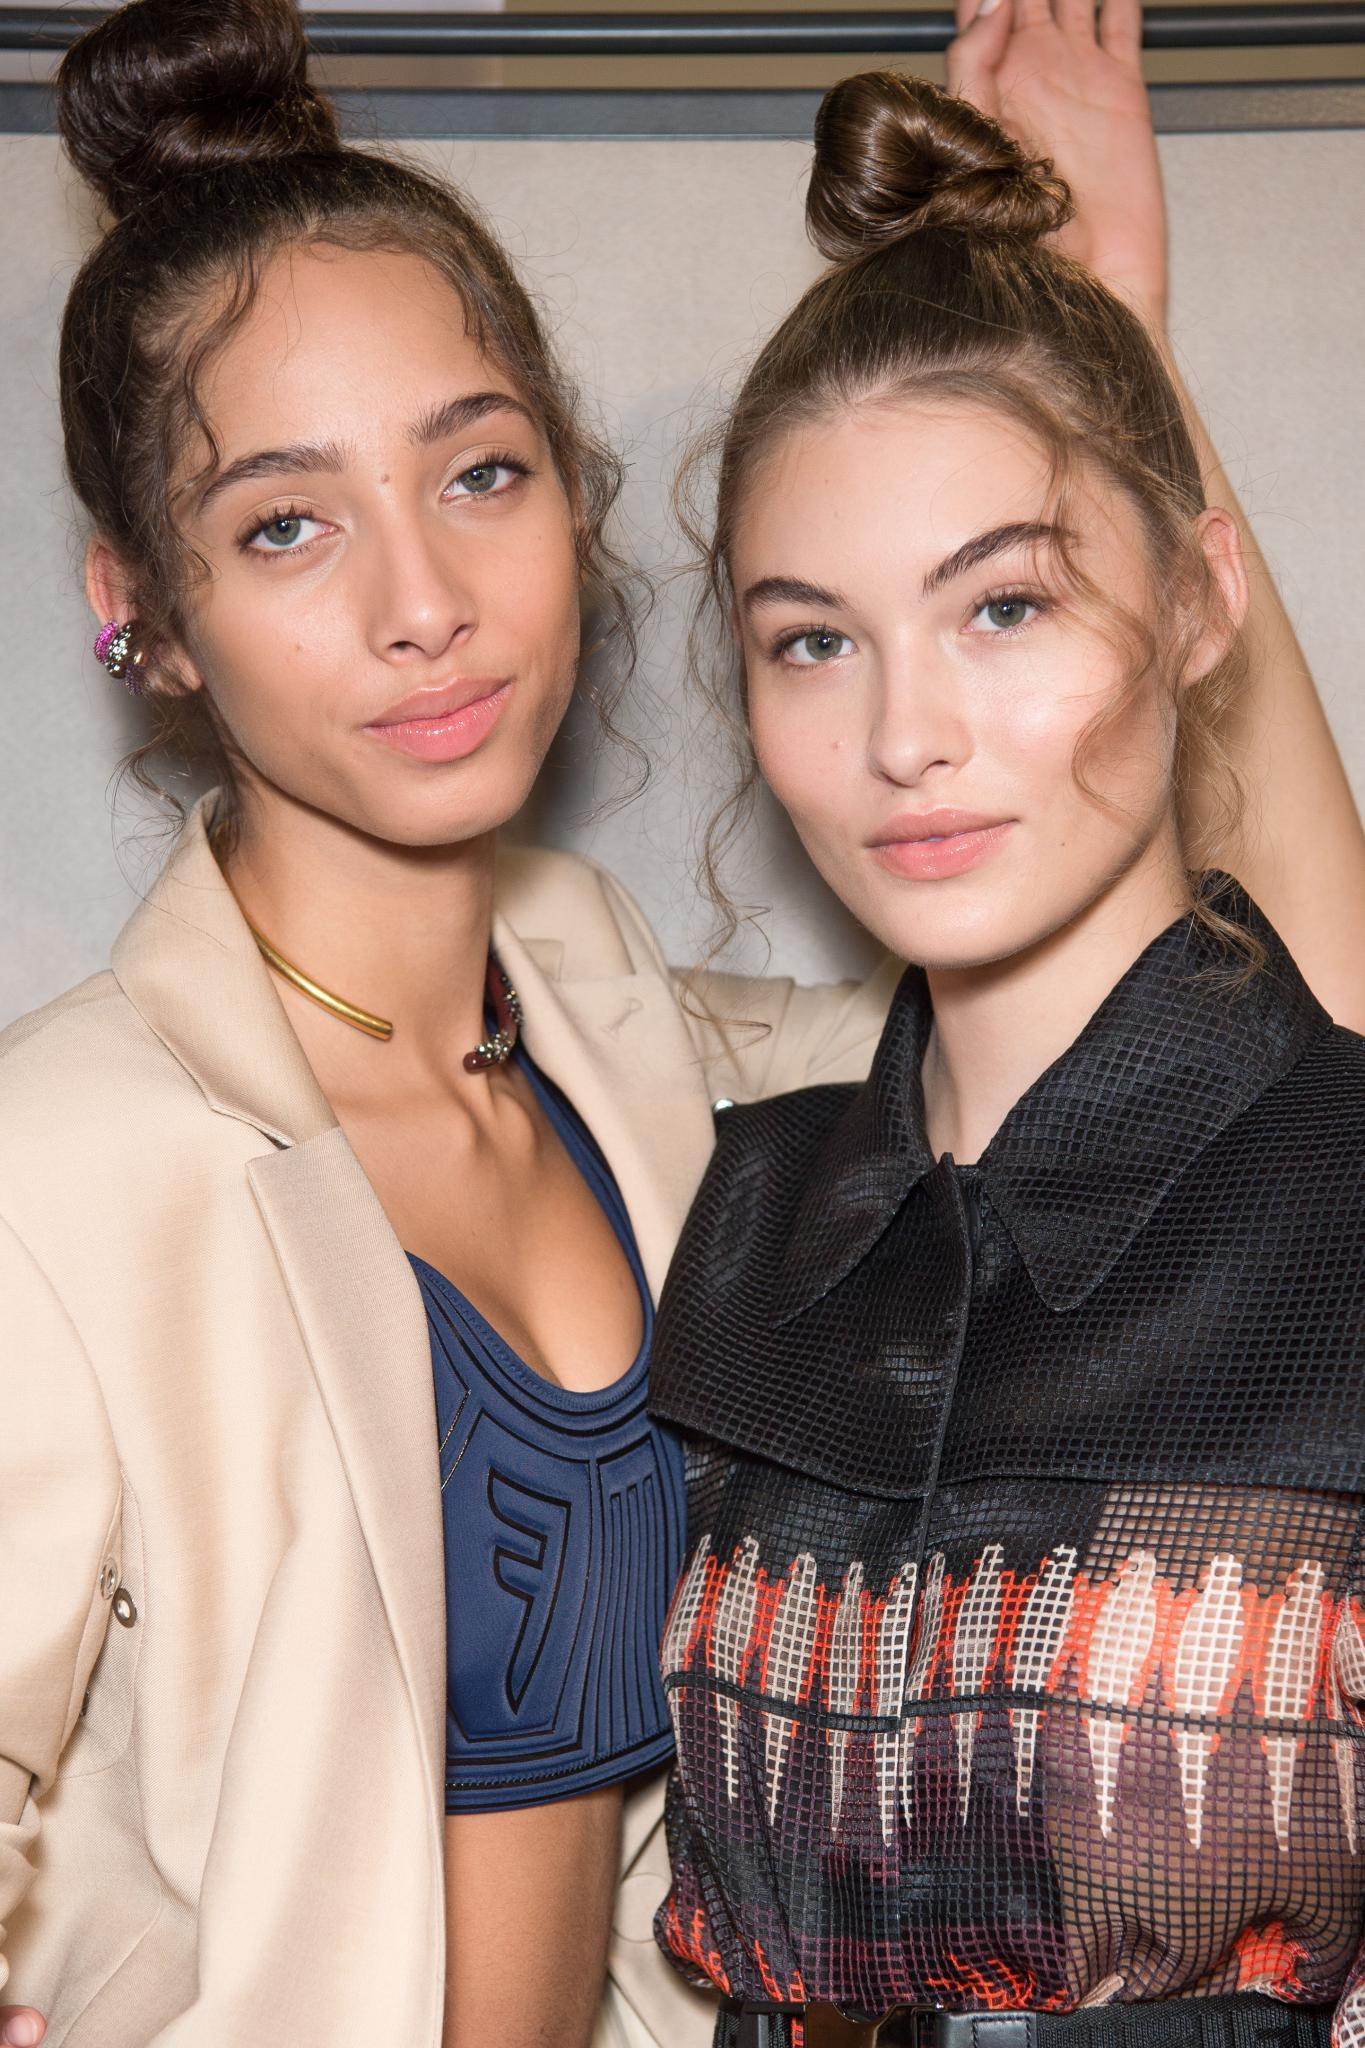 Two models backstage at Fendi with wispy, flyaway hair styled into a topknot, wearing Fendi clothing and posing for picture